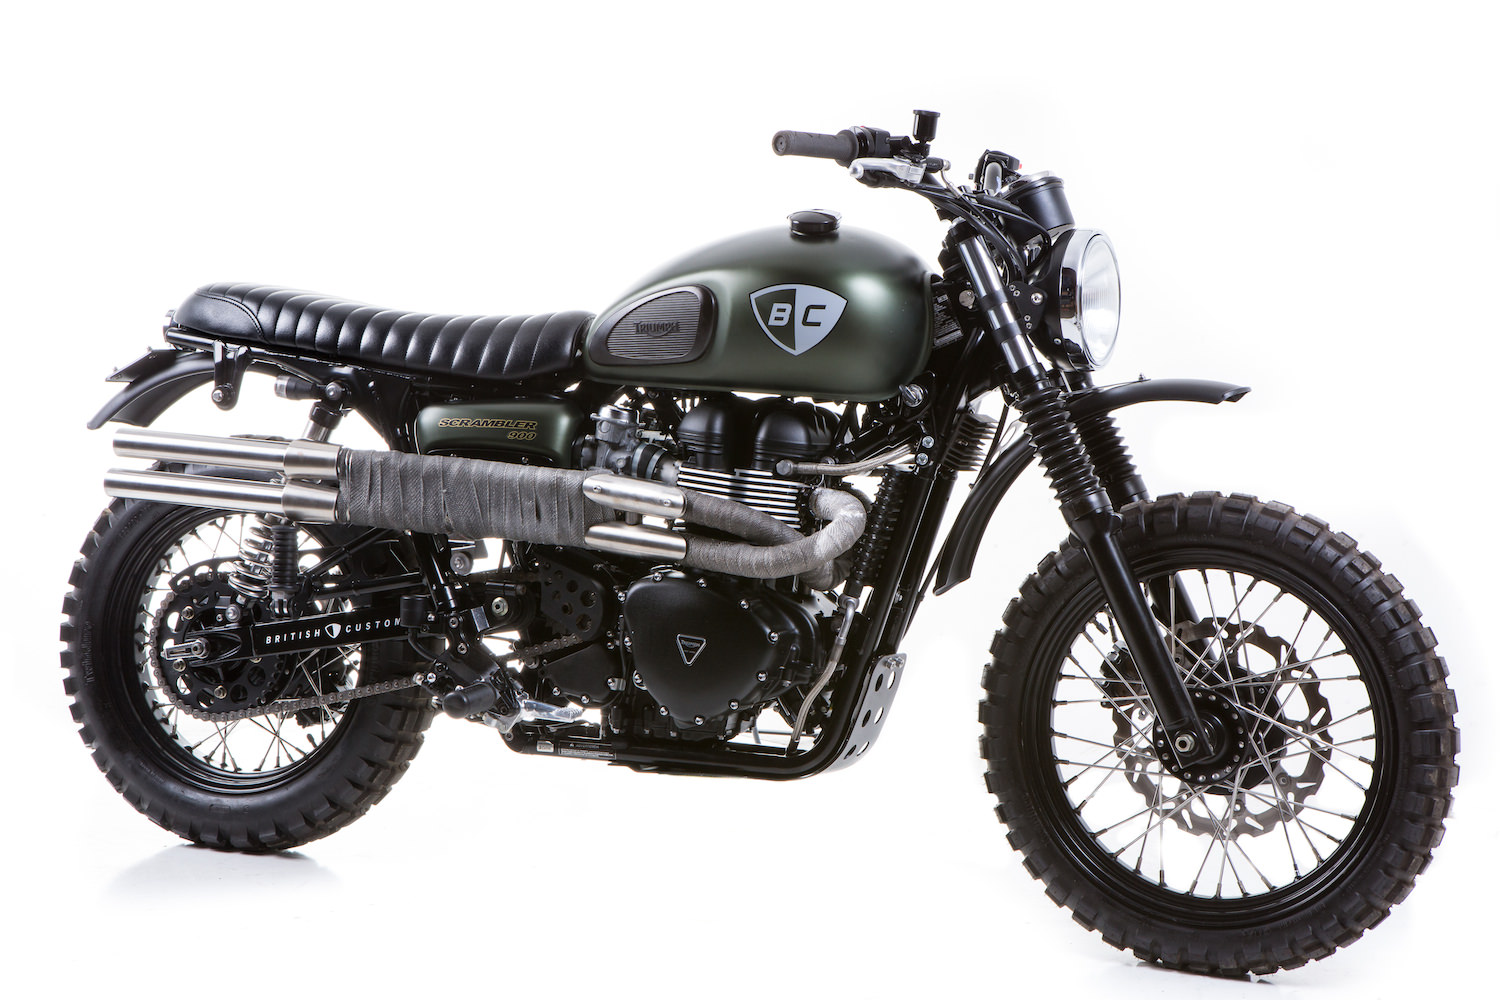 The Dirt Bike By British Customs